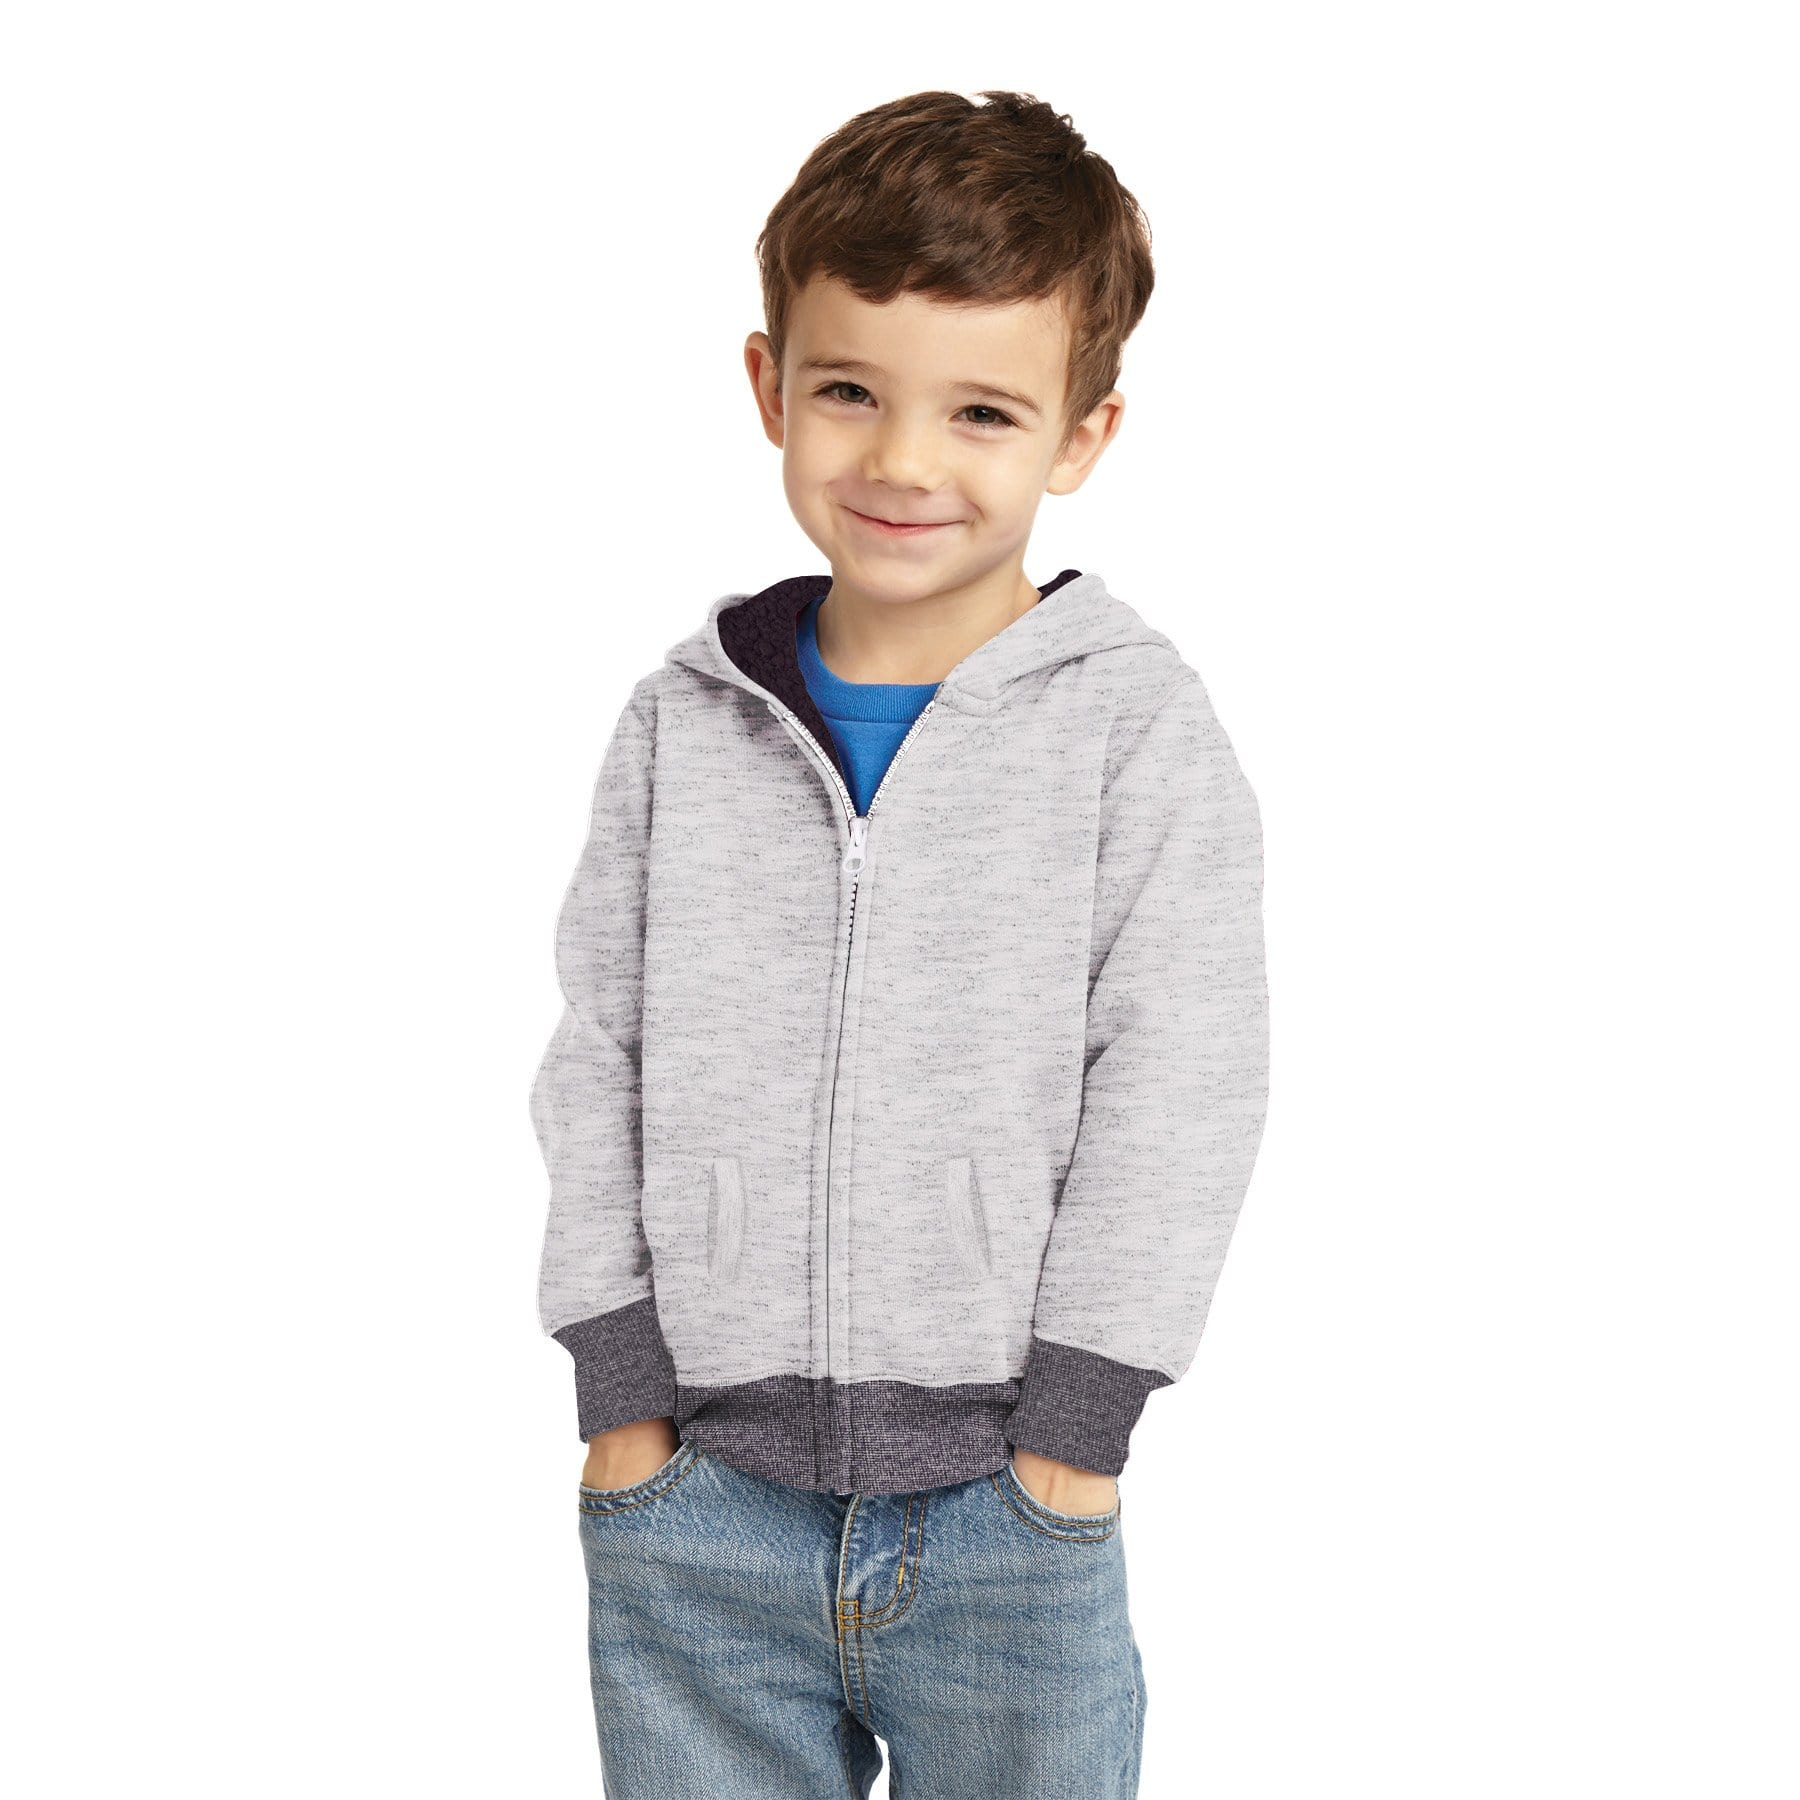 Stone Harbor Boy's Zipper Hoodie Silver Marl / 2-3 Years Boy's Stone Harbor Marlic Fur Lined Zipper HOODIE